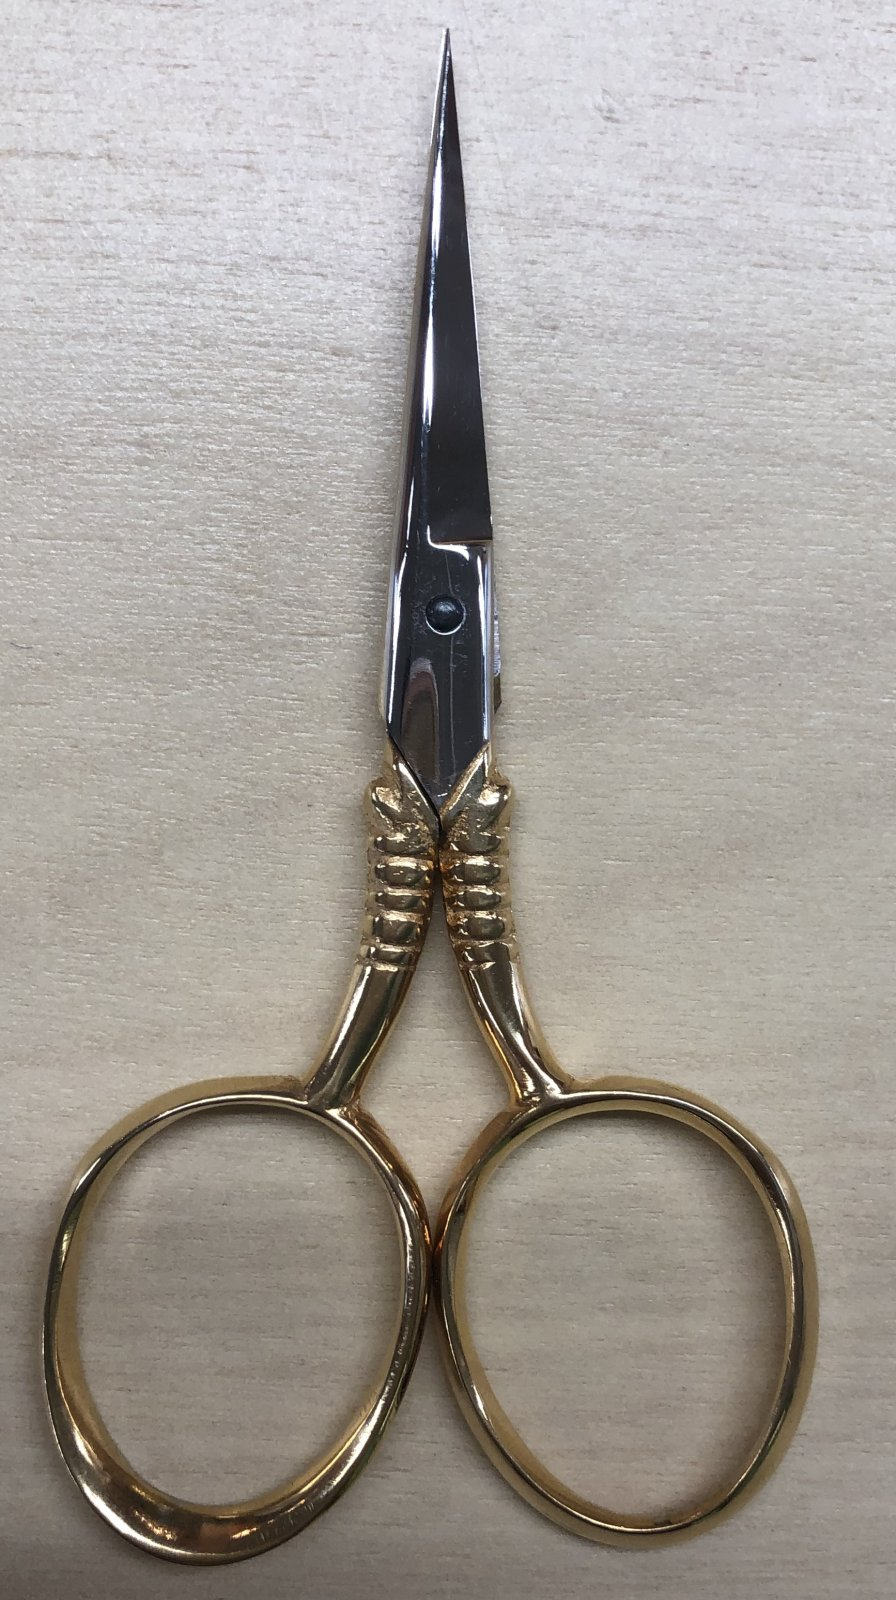 Scissors-DOVO Gold Plated Large Thumb